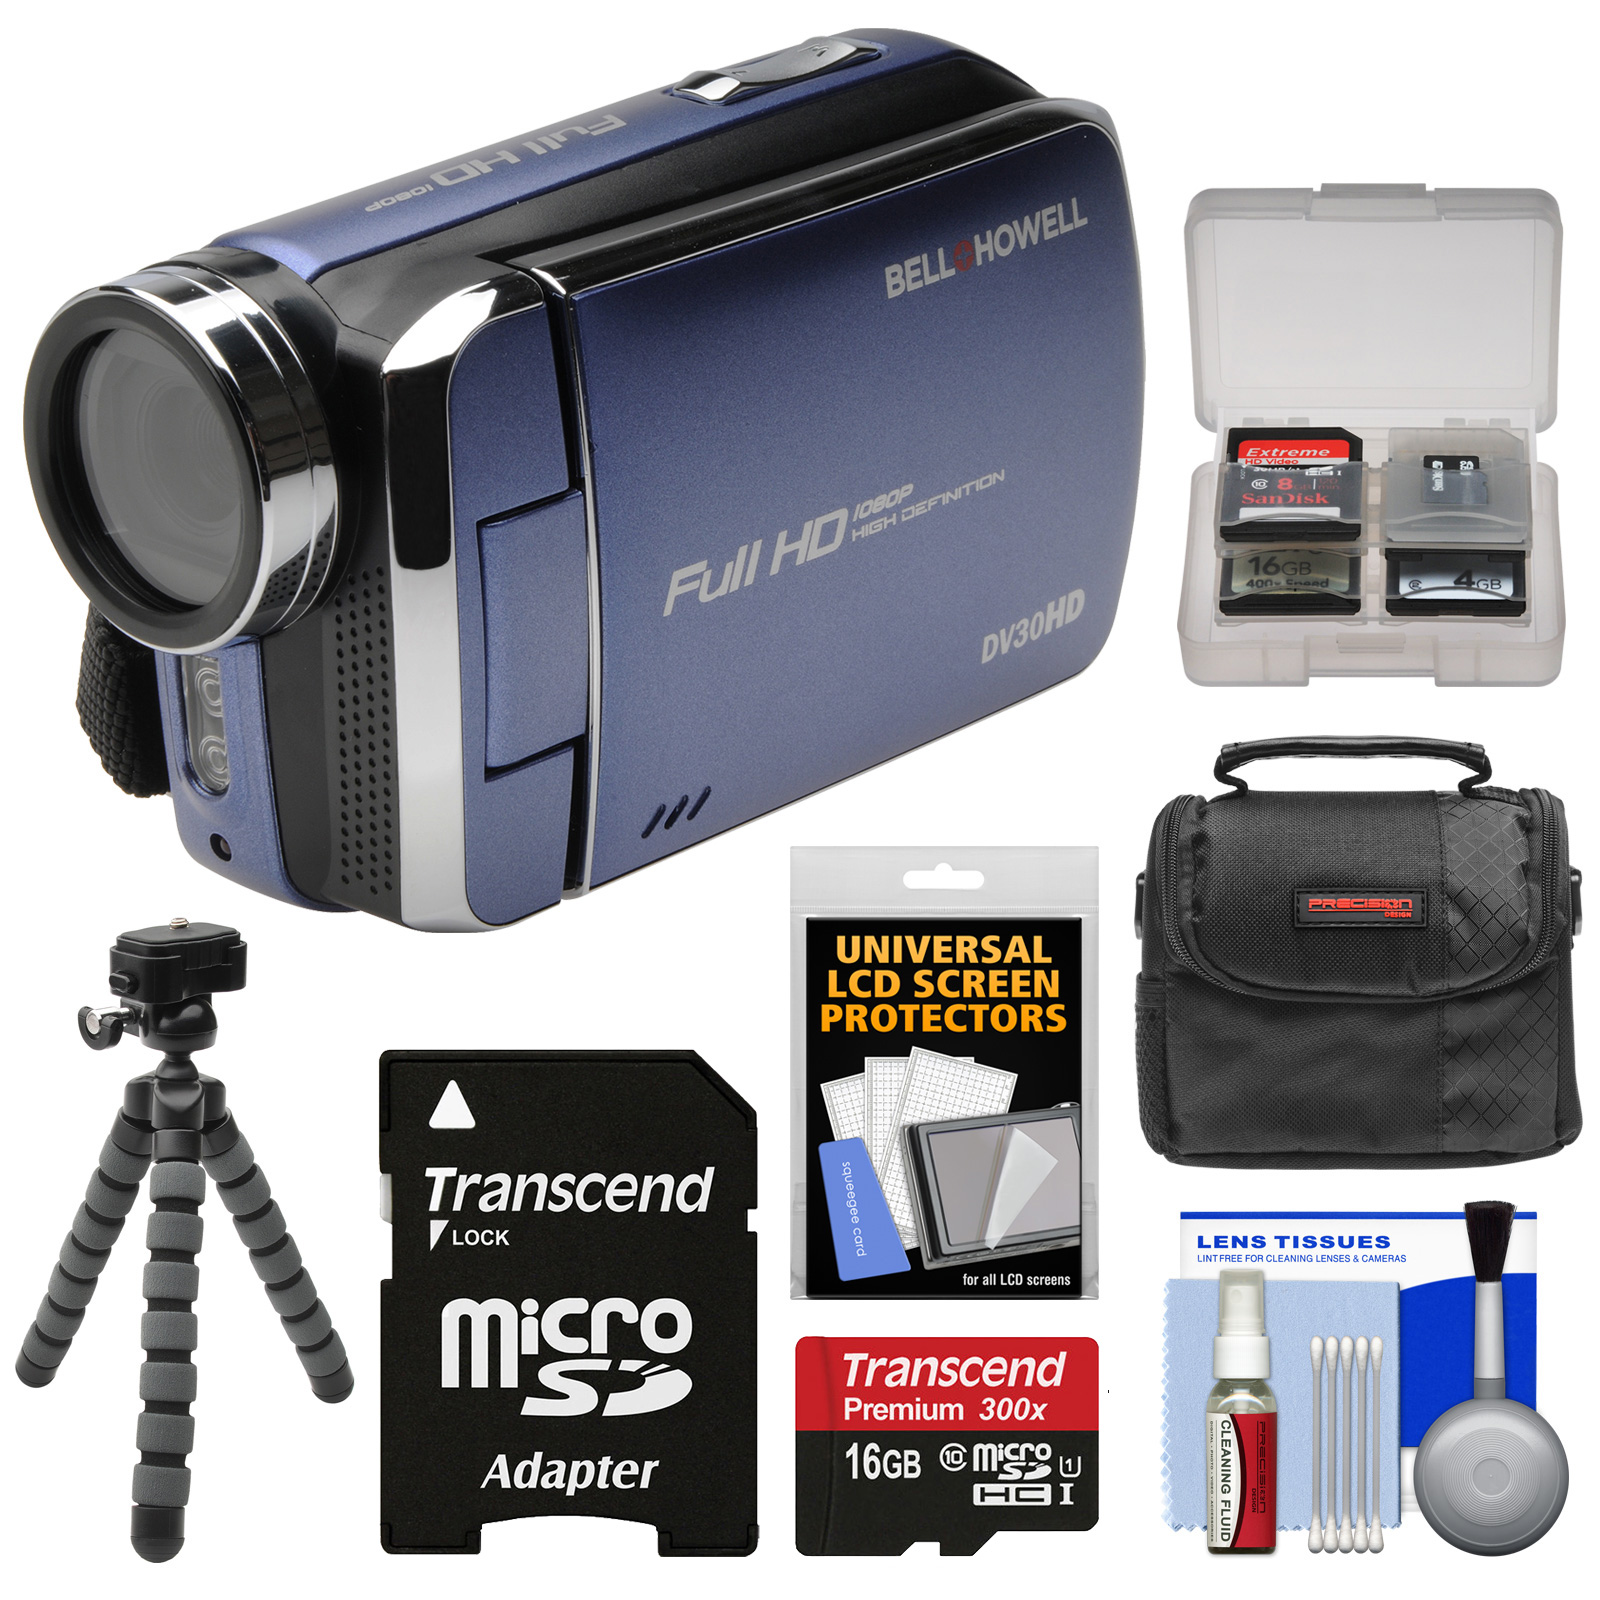 Bell & Howell DV30HD 1080p HD Digital Video Camera Camcorder (Blue) with 16GB Card + Case + Flex Tripod + Kit